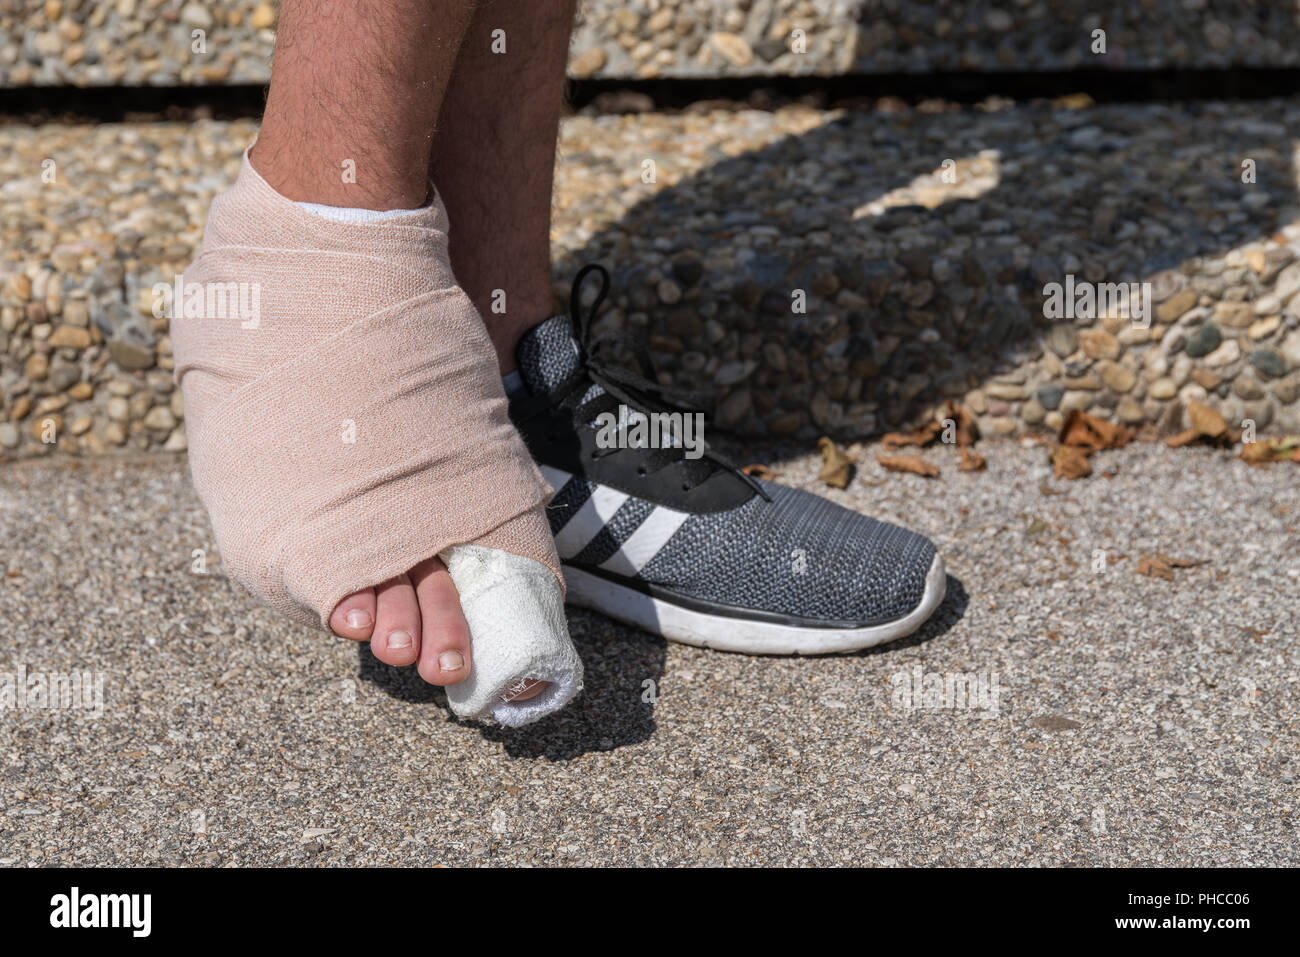 Bandaged right foot and toe injury - close-up - Stock Image